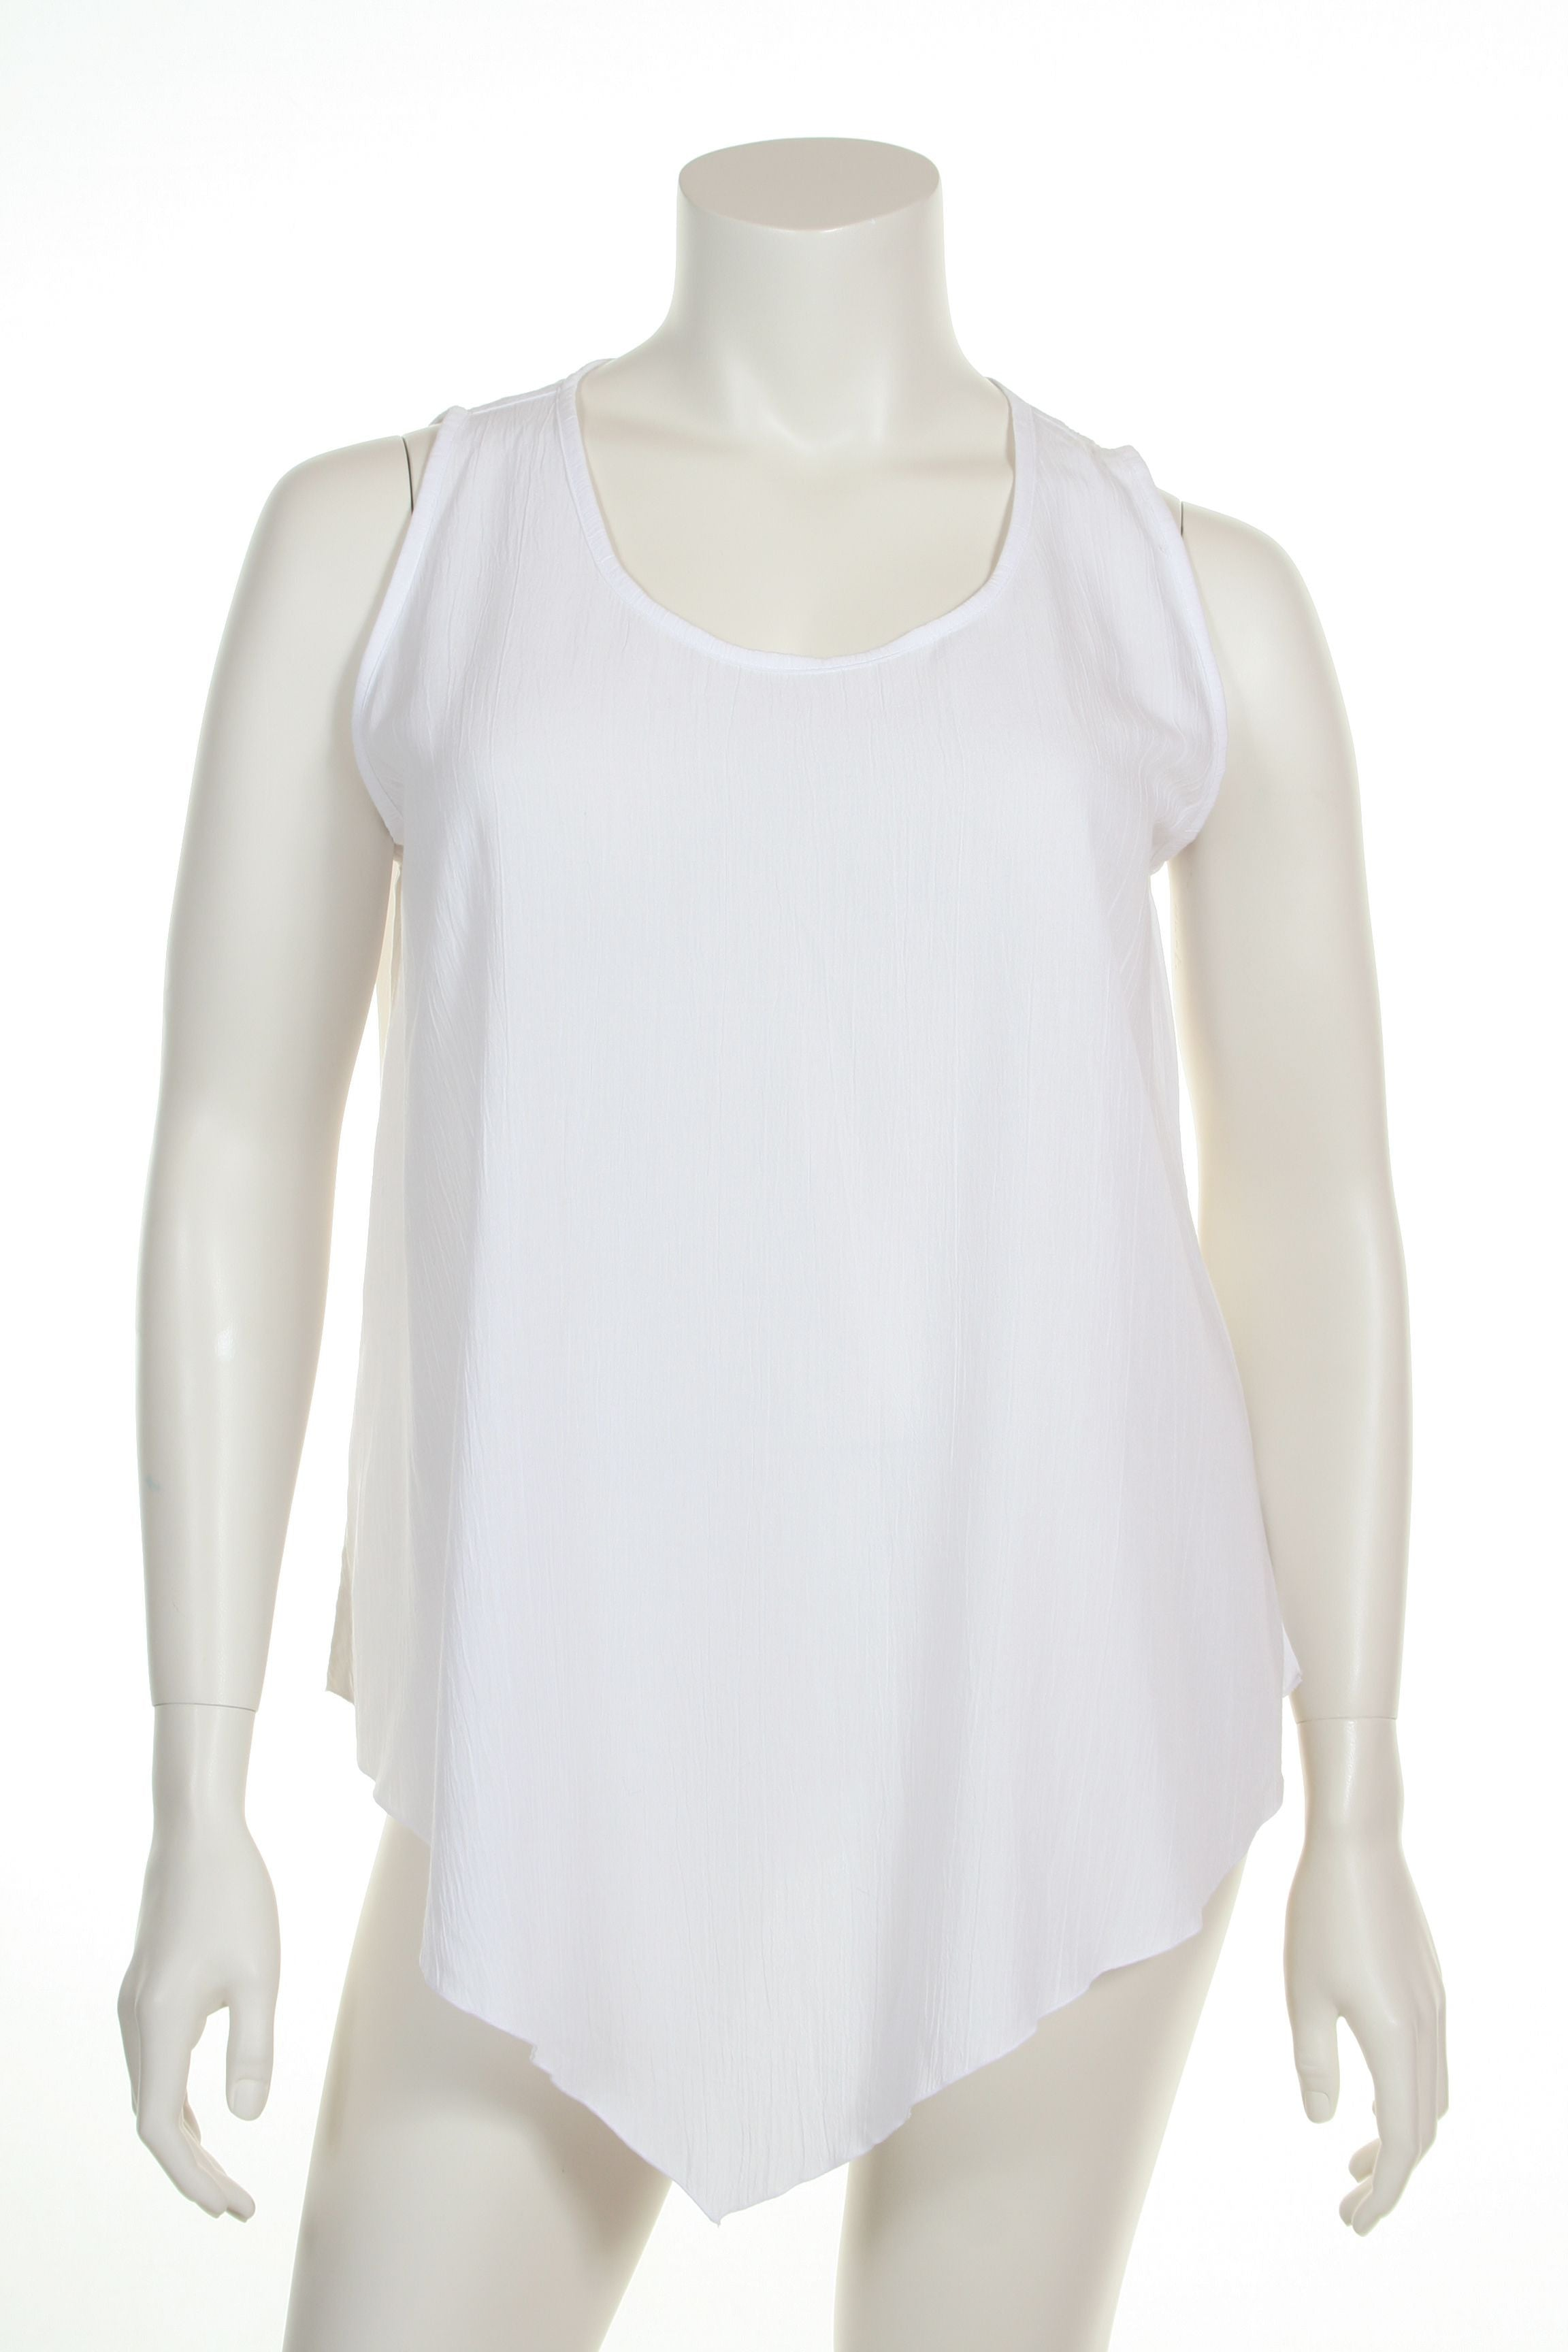 AC1237 AC1009 Top U neck V bottom sleeveless